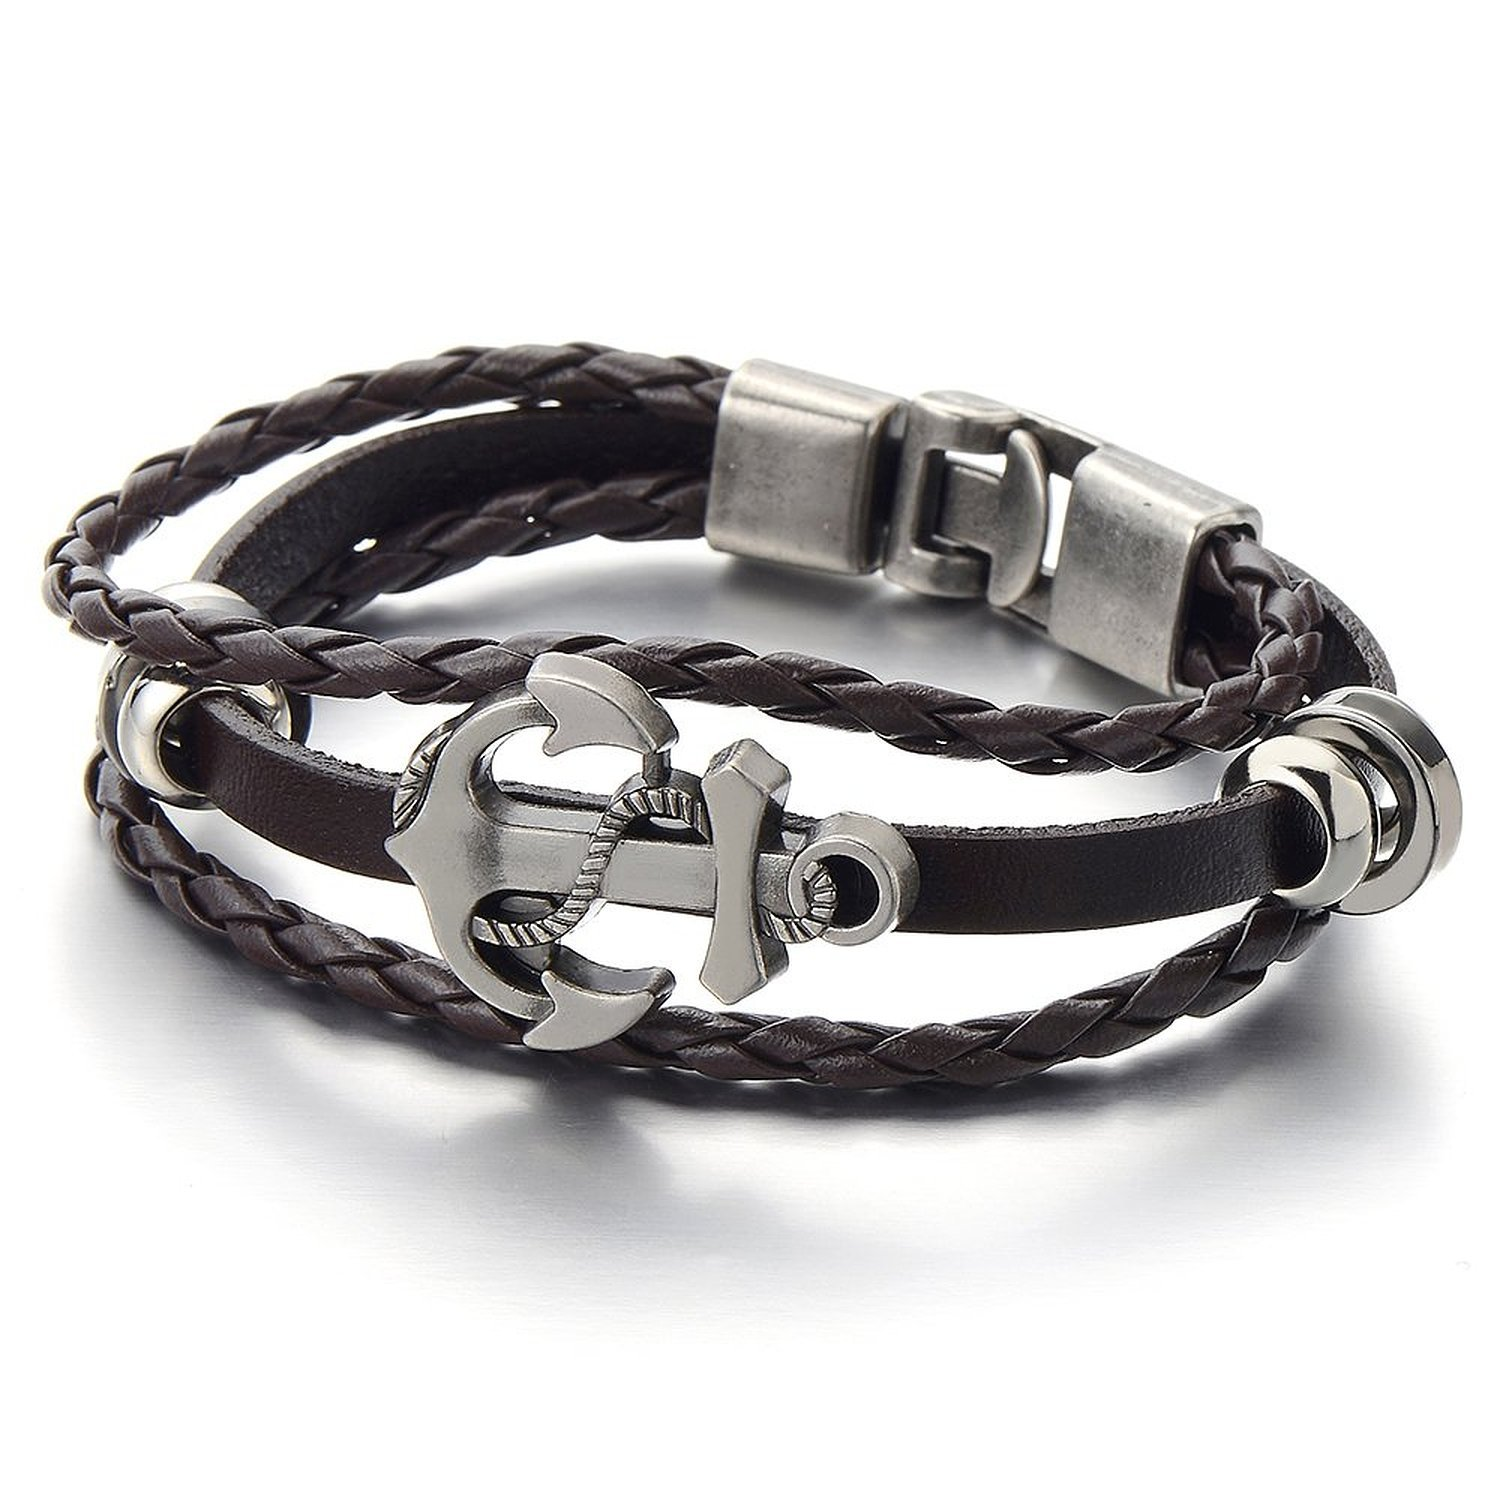 Mens Boys Anchor Brown Braided Leather Bracelet Multi-strand Leather Wristband Wrap Bracelet COOLSTEELANDBEYOND MB-724-CA